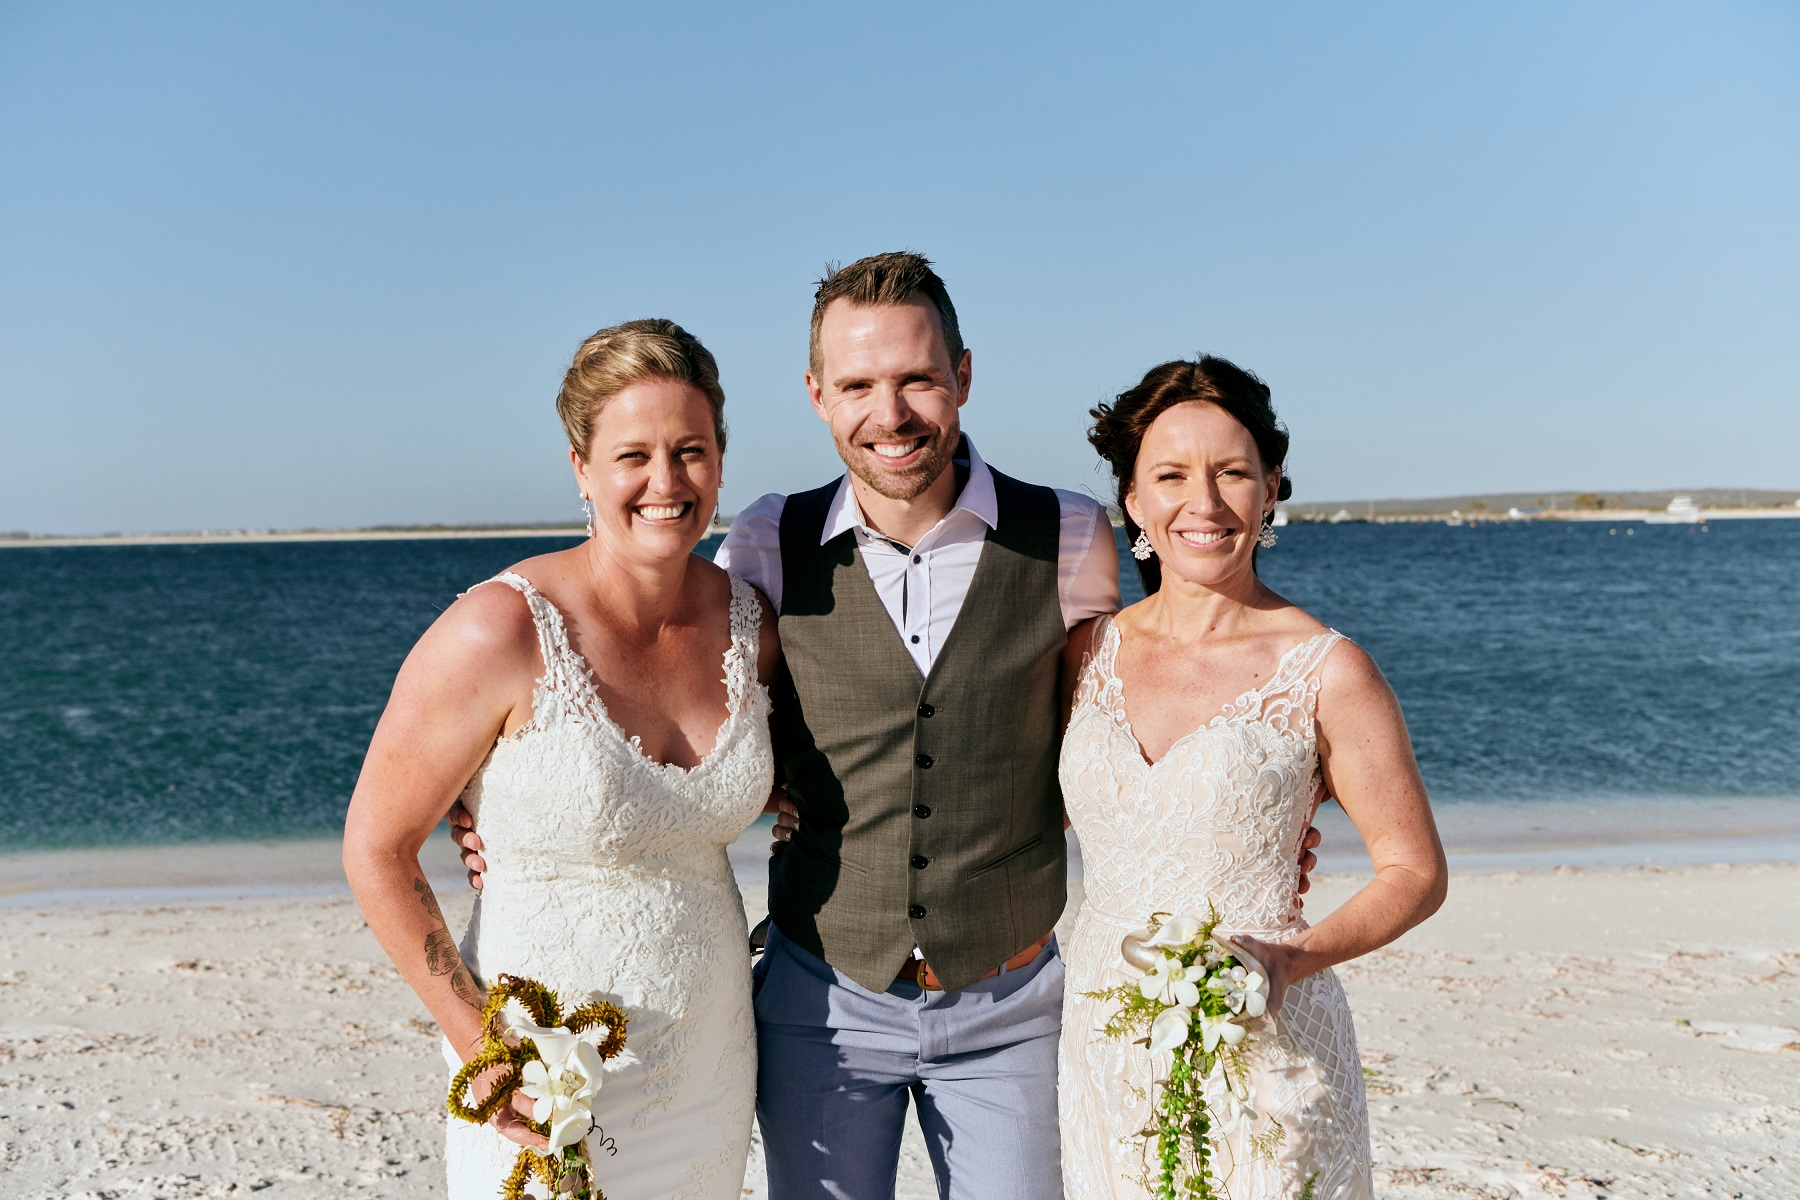 KirkGoodsell Marriage Celebrant Perth -